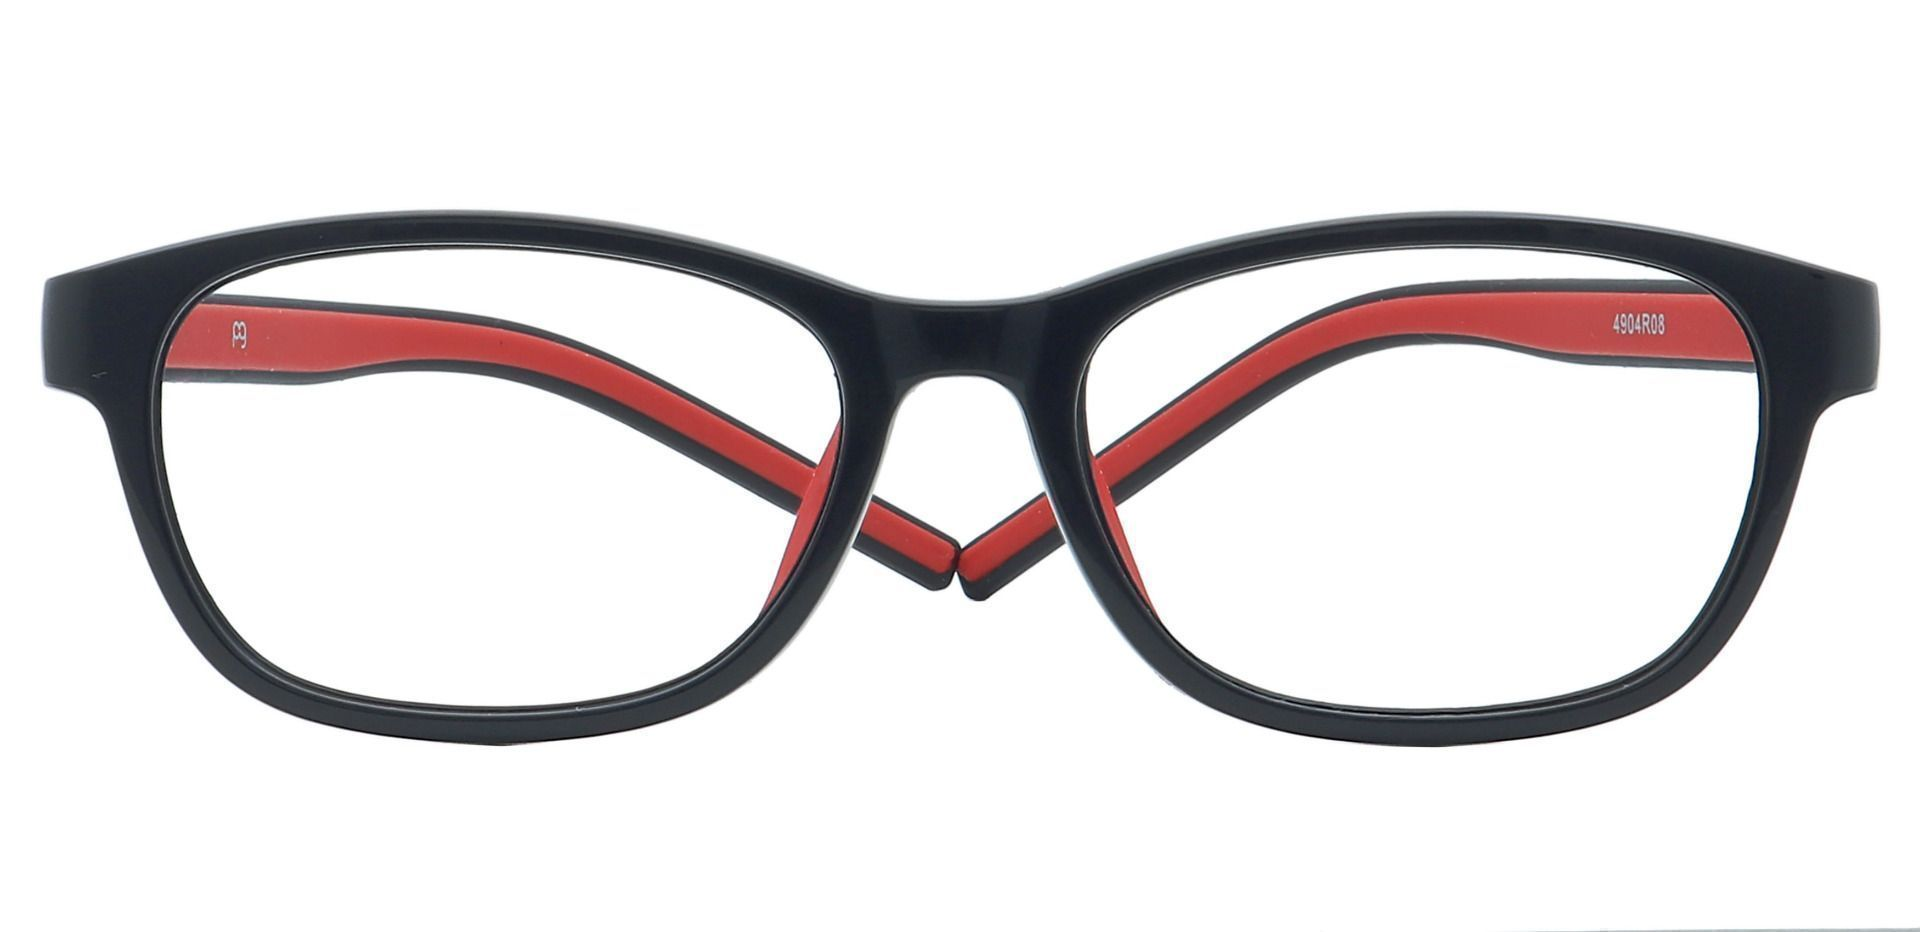 Edison Oval Prescription Glasses - Red